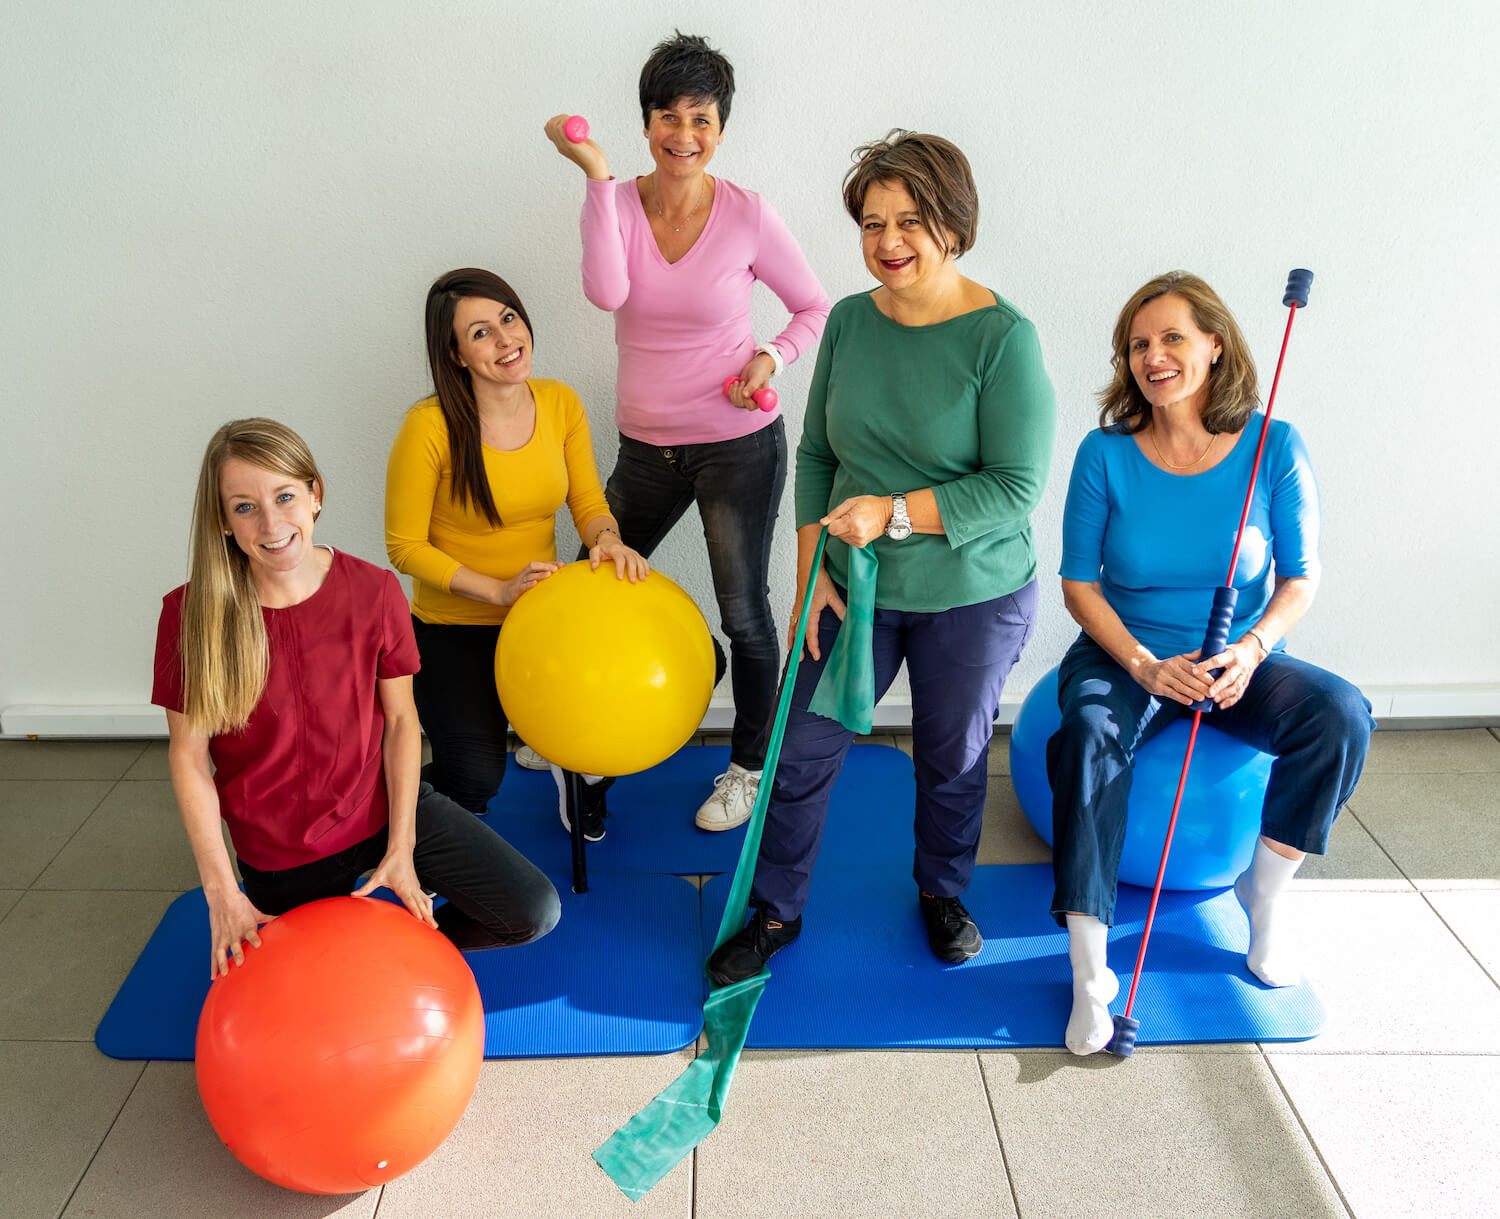 Fisio Erni - our team is composed of 3 qualified physiotherapists